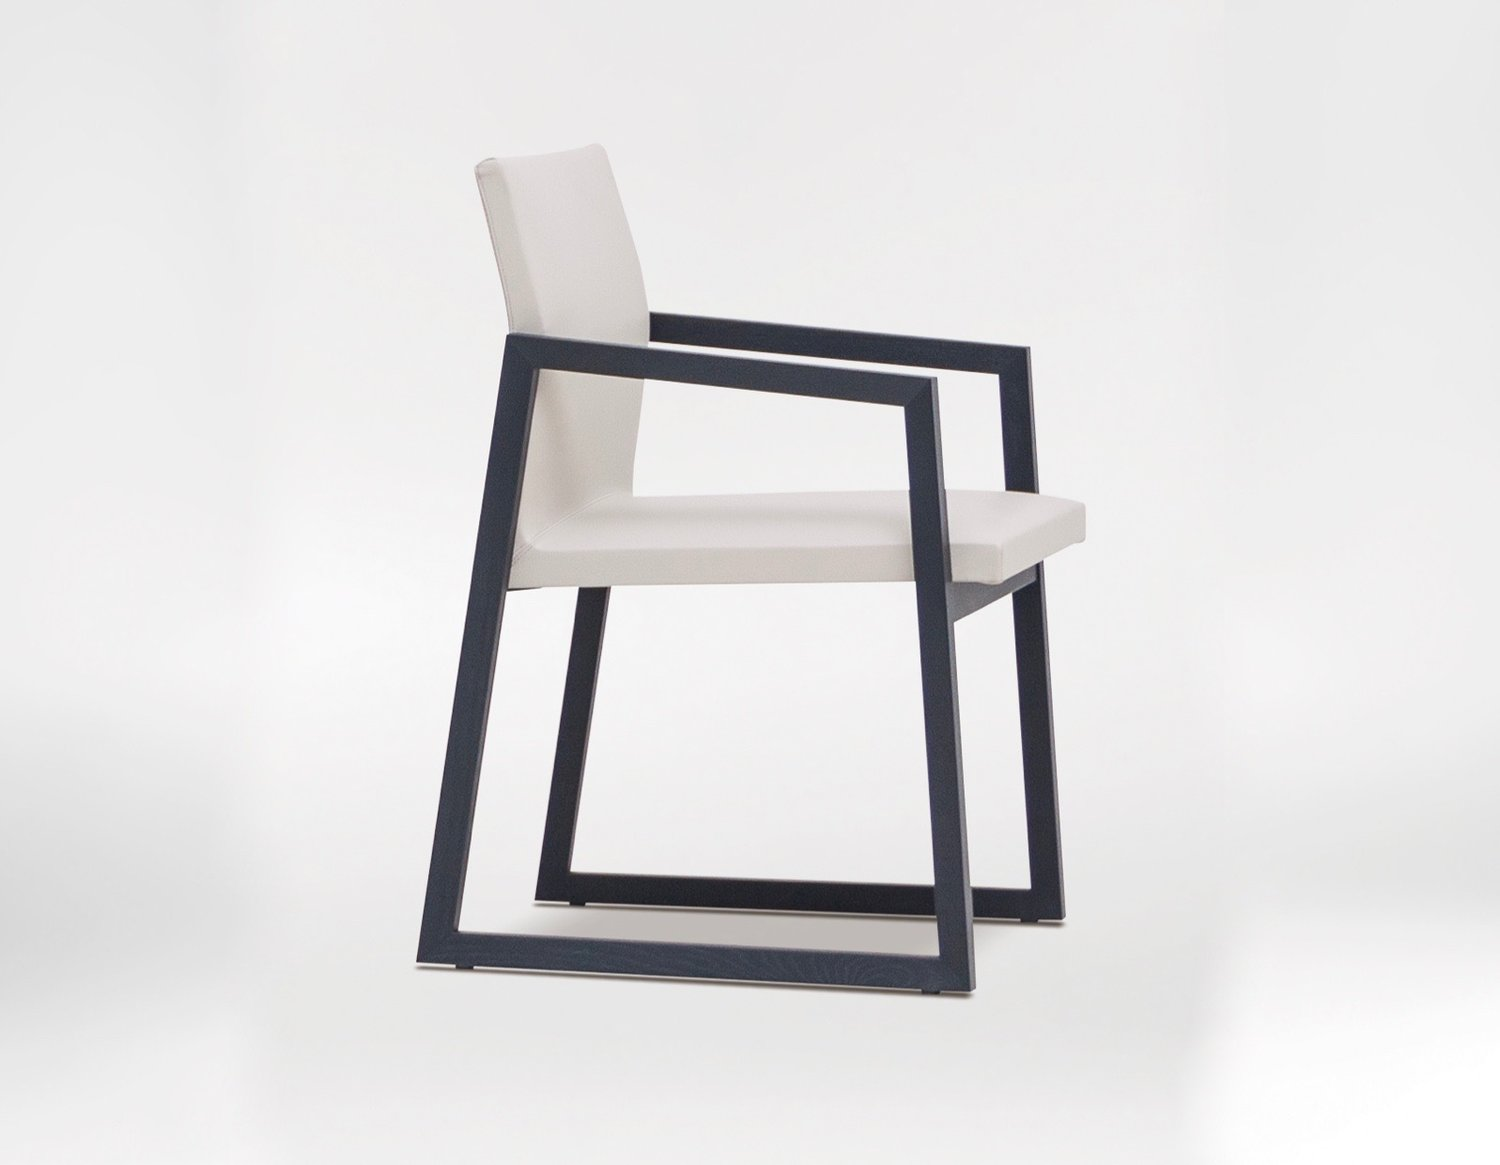 GRID CHAIR - Abstract framework highlights slim and neat aesthetics.